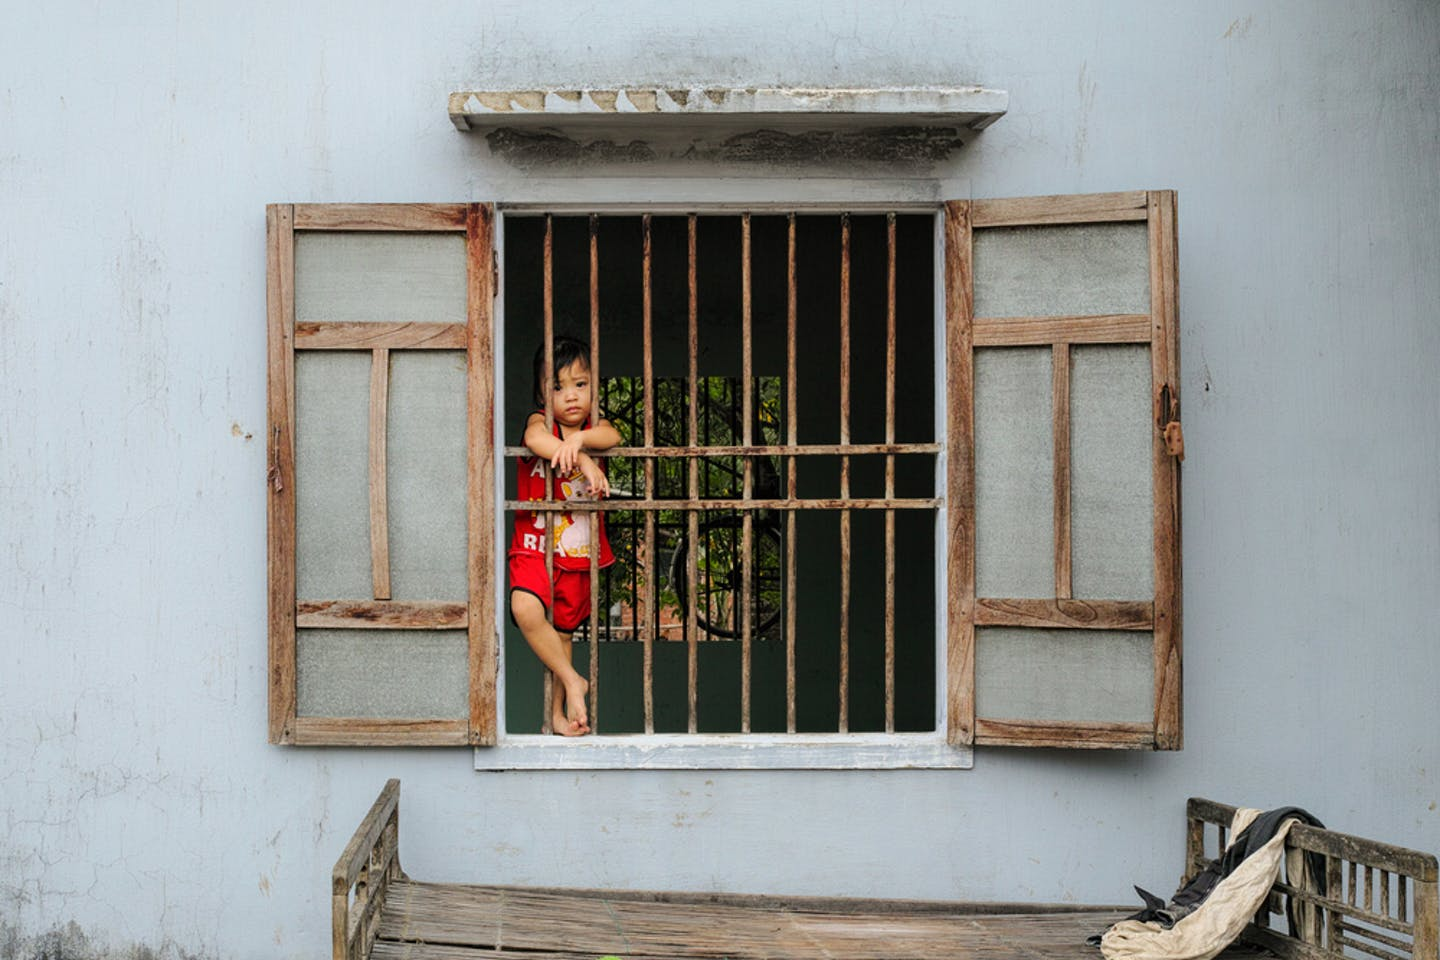 vietnam child house window